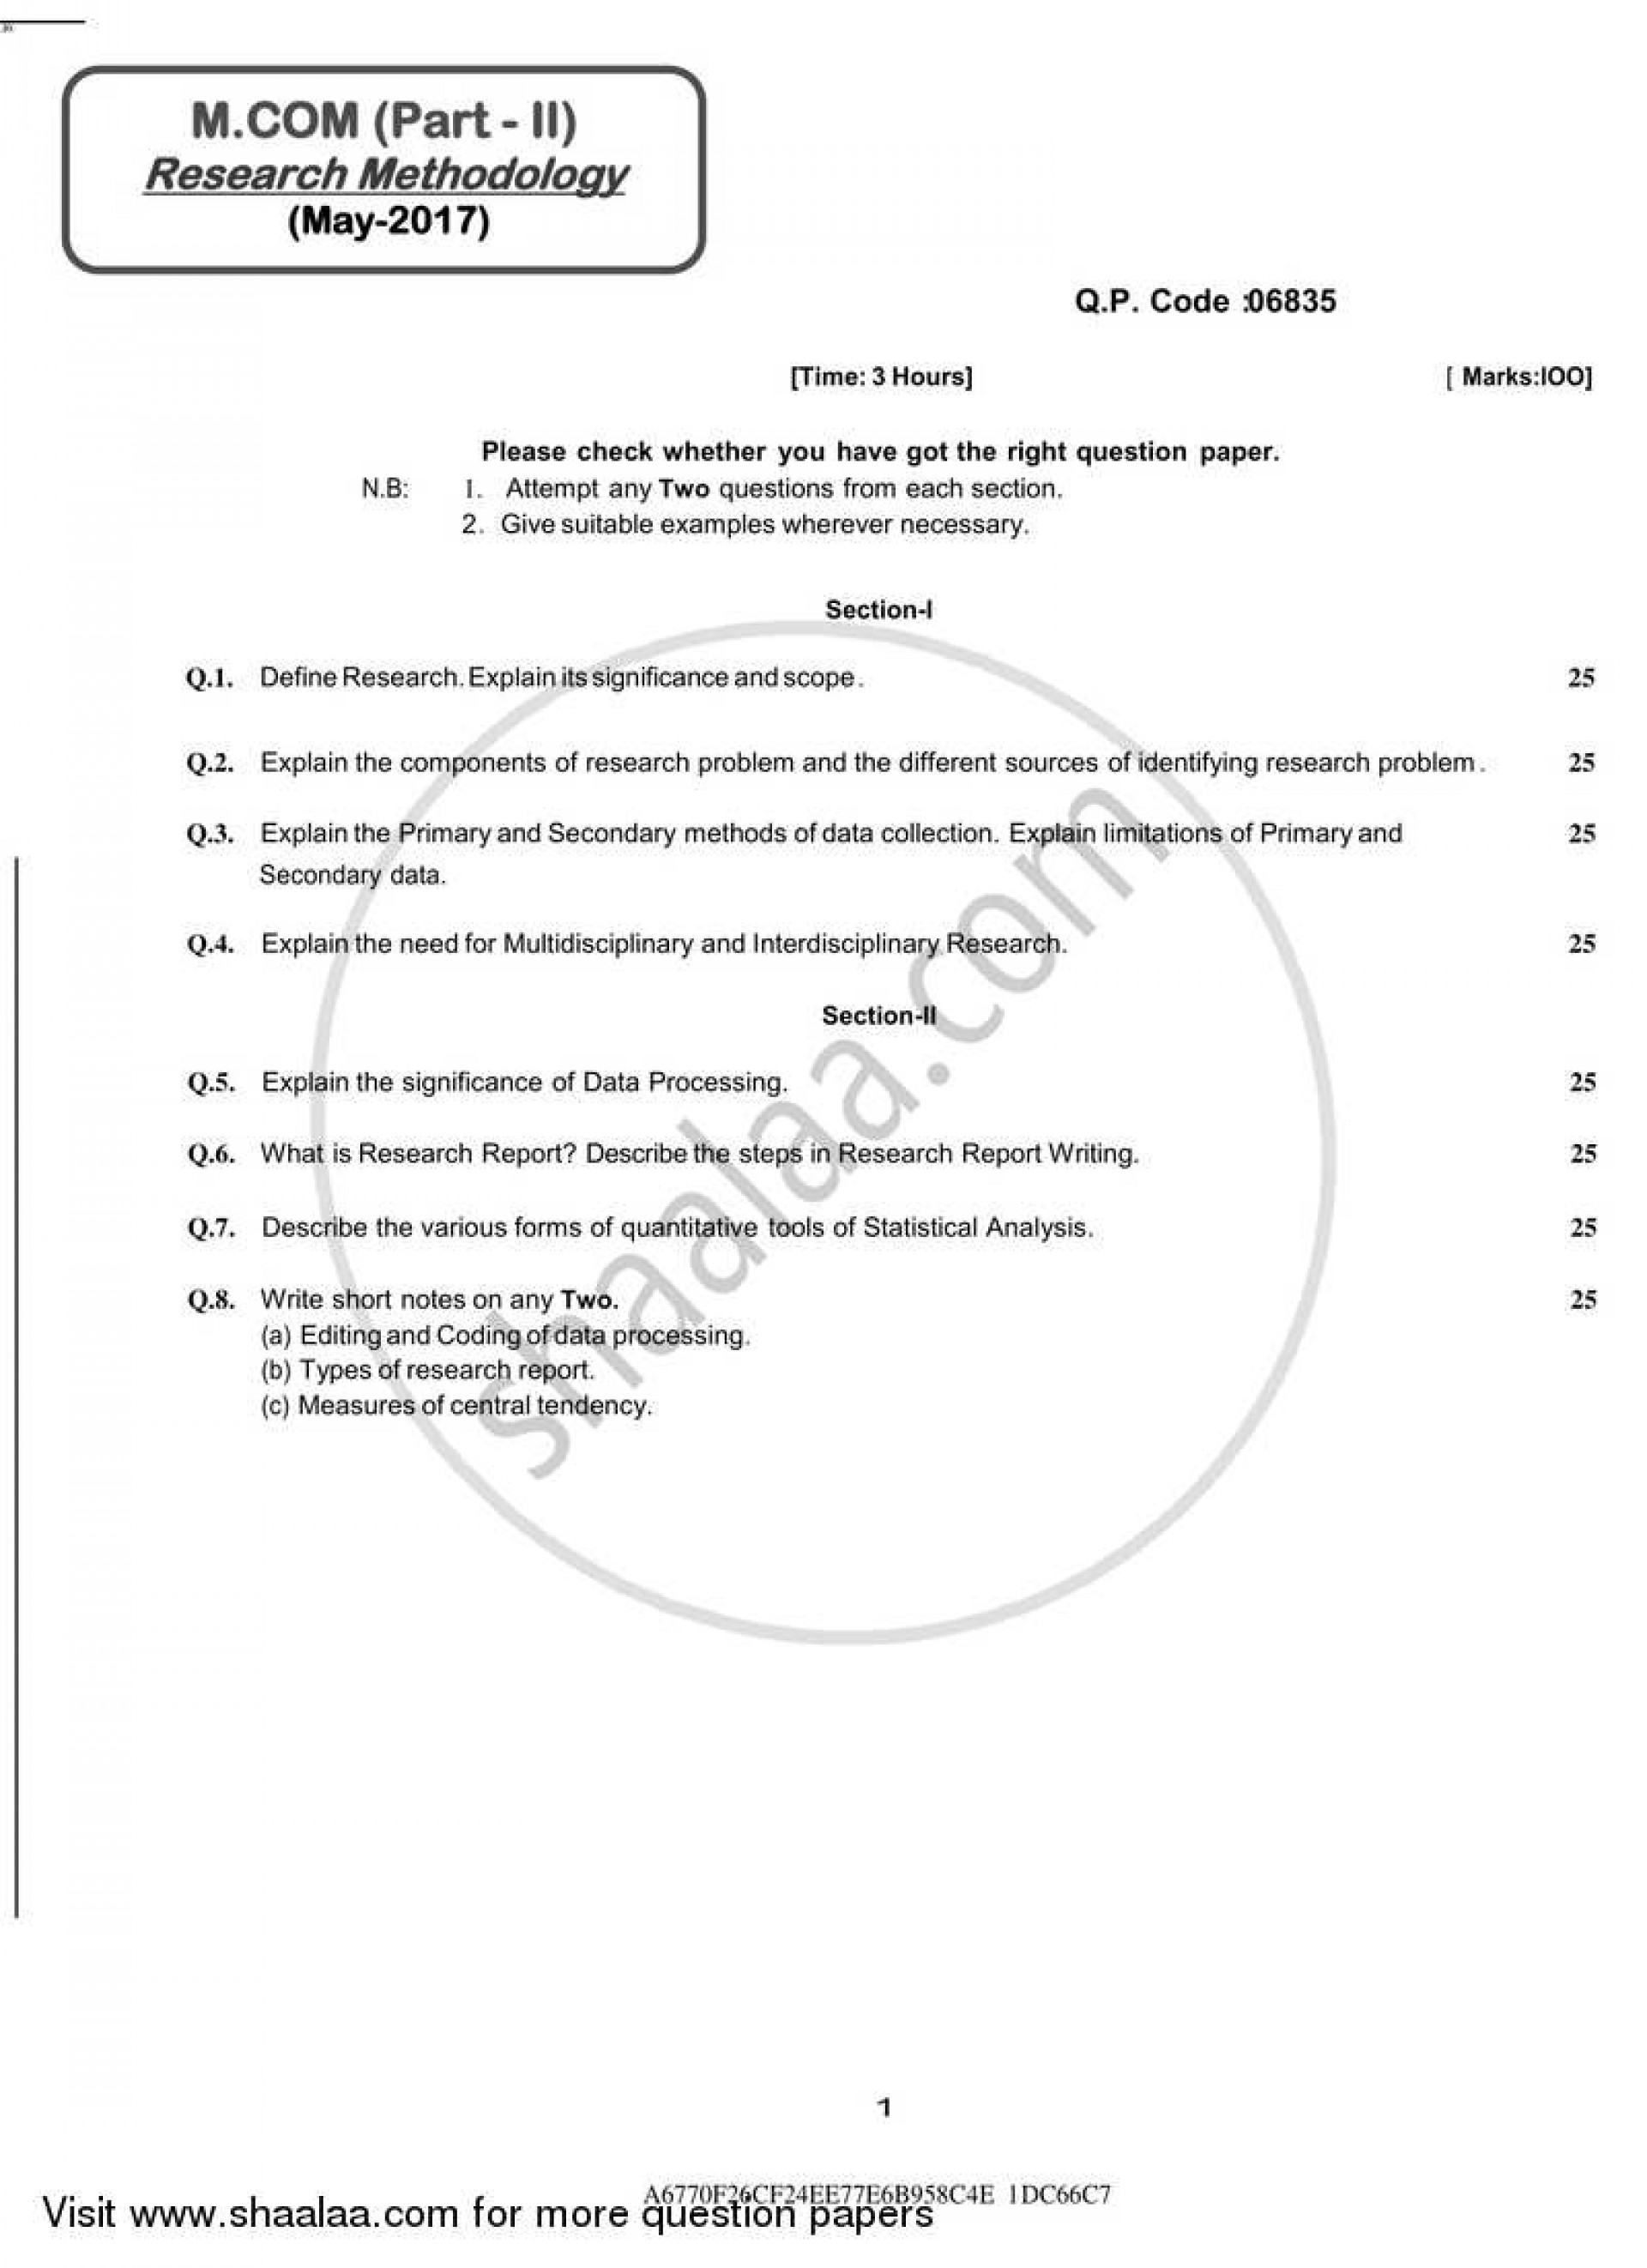 002 University Of Mumbai Master Mcom Research Methodology Yearly Pattern Part 2017 26f851382b392441599d7a0d1d7fd45f3 Business Methods Question Unusual Paper 2016 1920